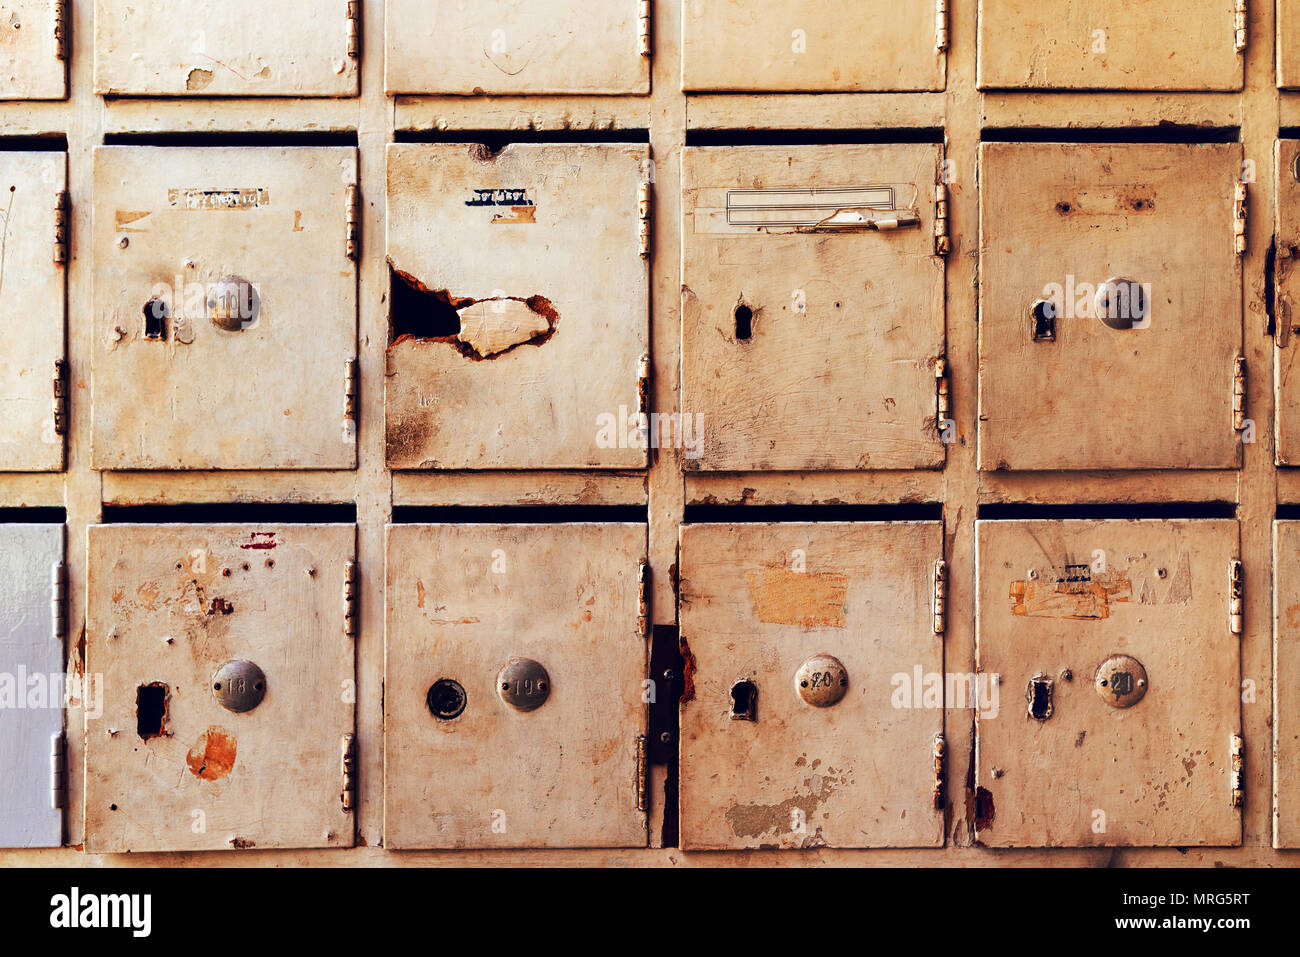 Obsolete mailboxes for post and letters inside of an old apartment ...